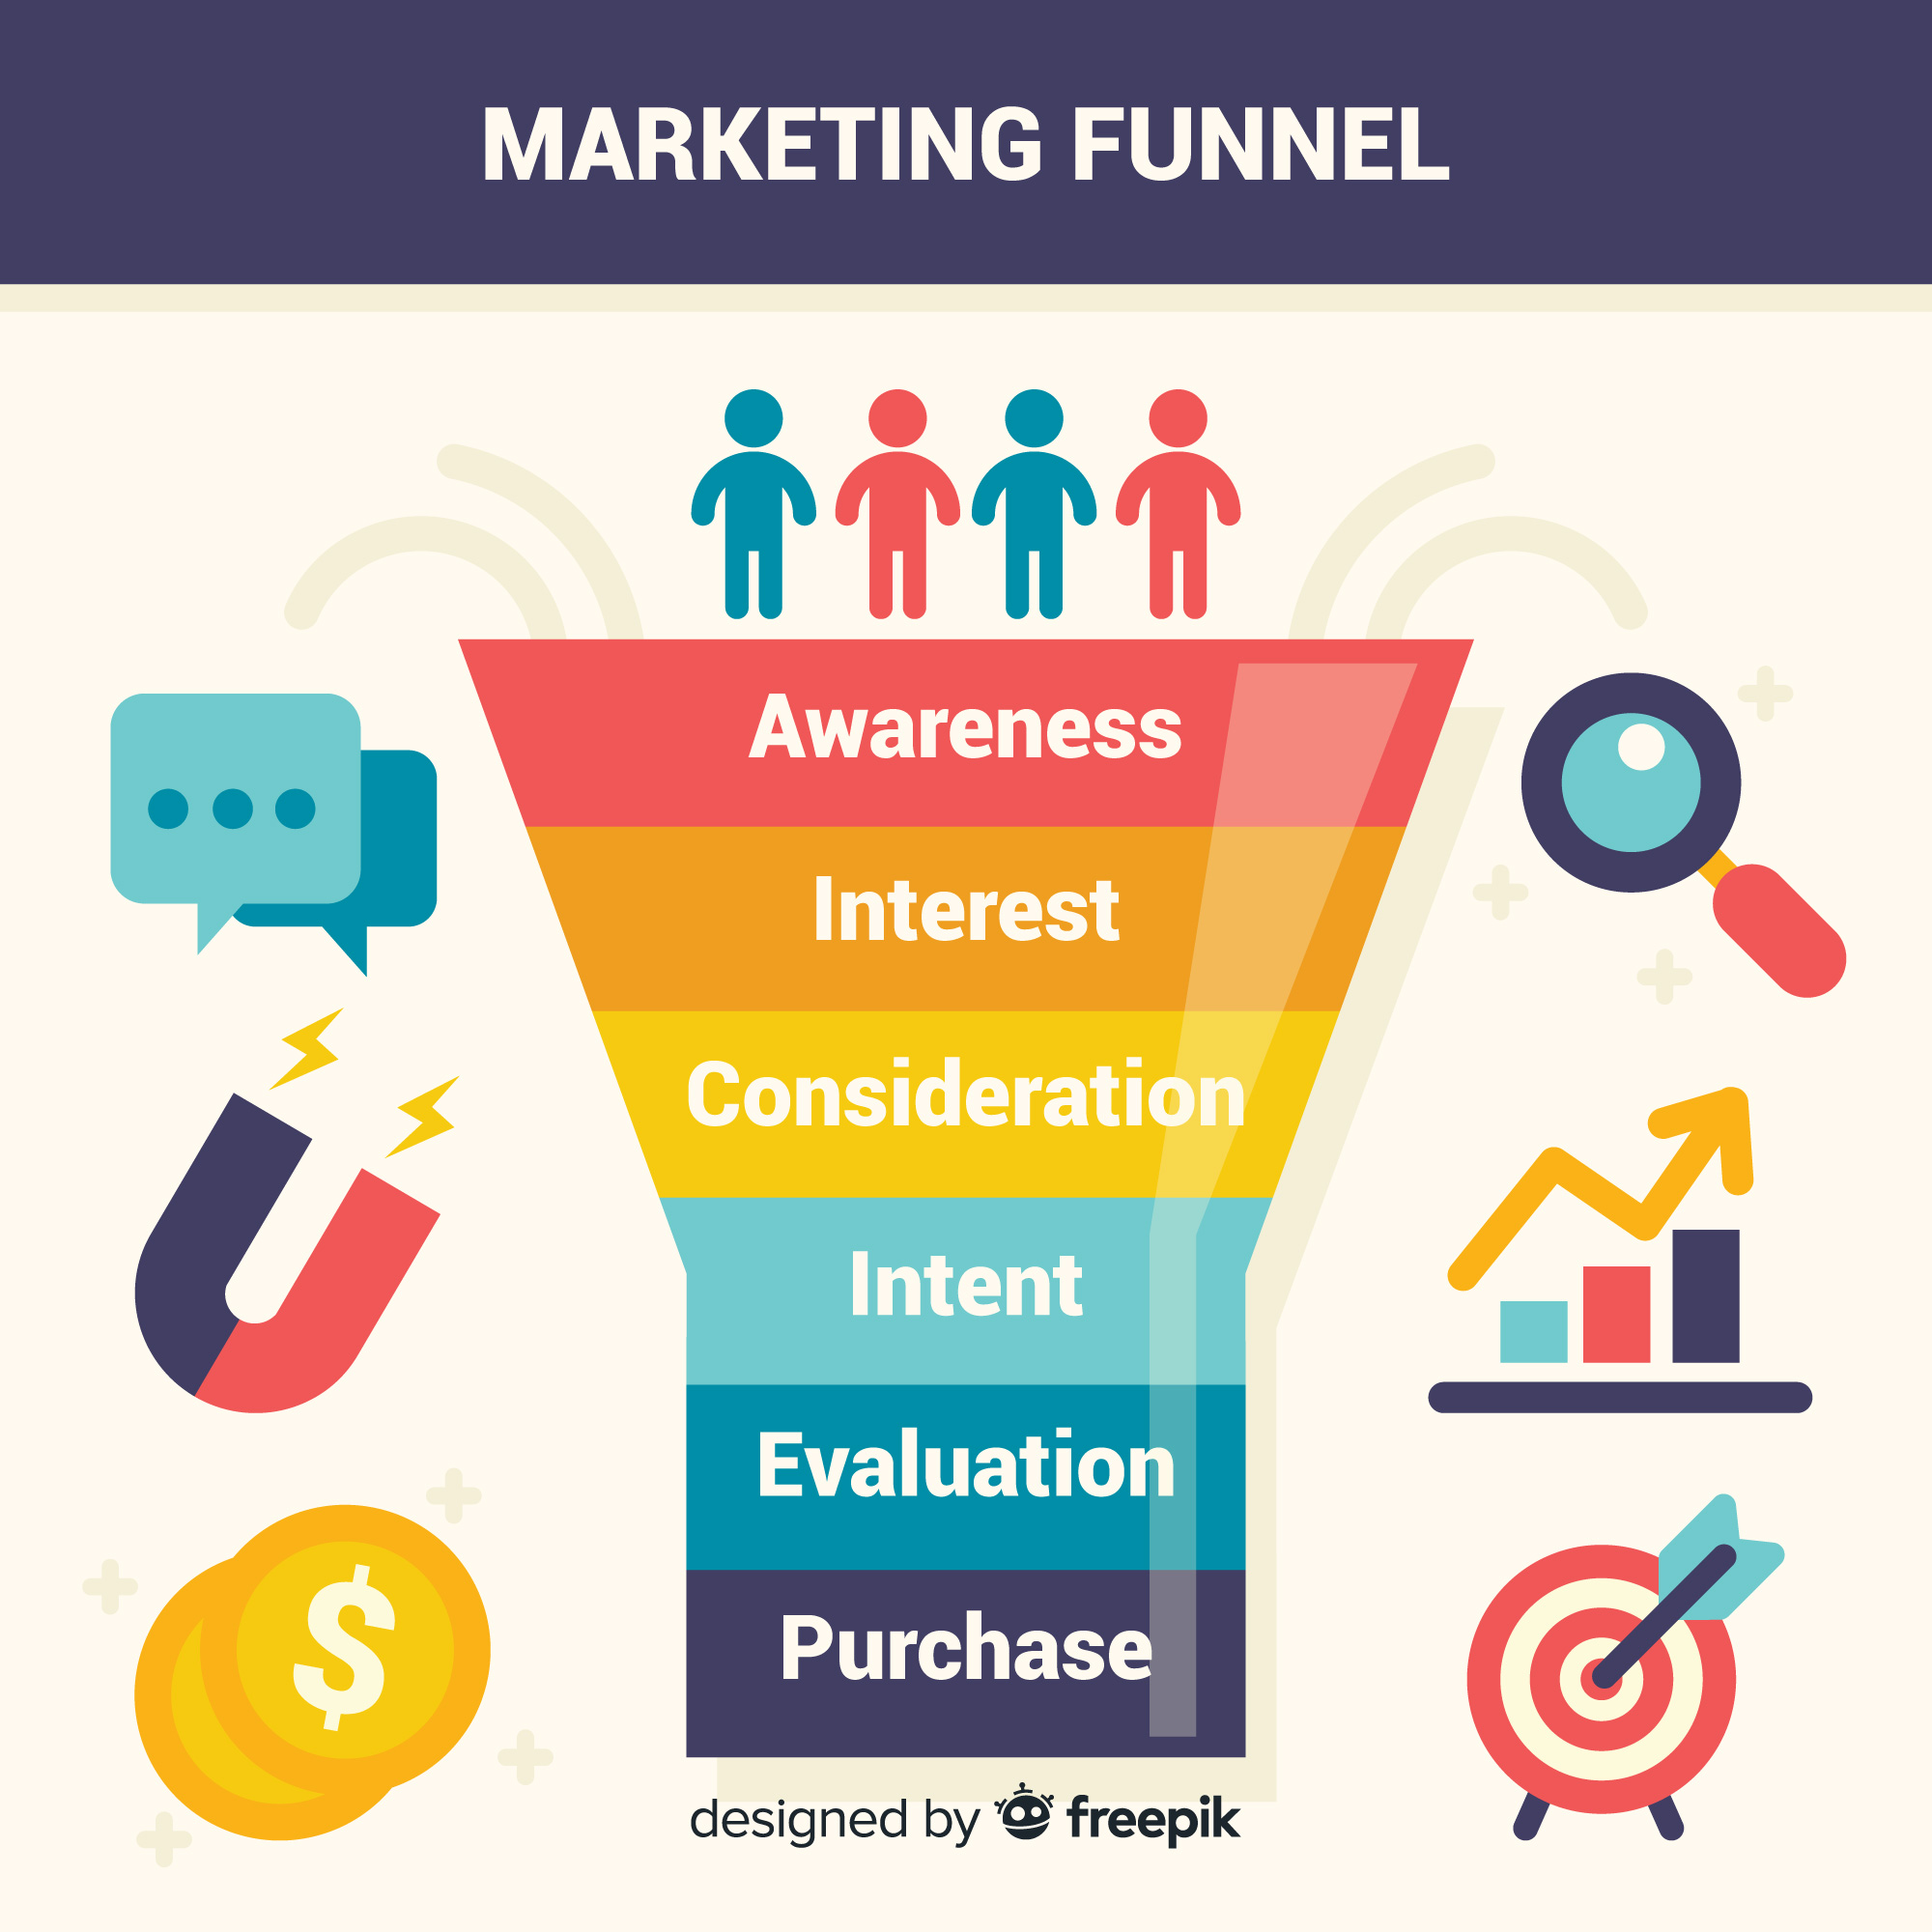 A marketing funnel used to design the customer decision journey